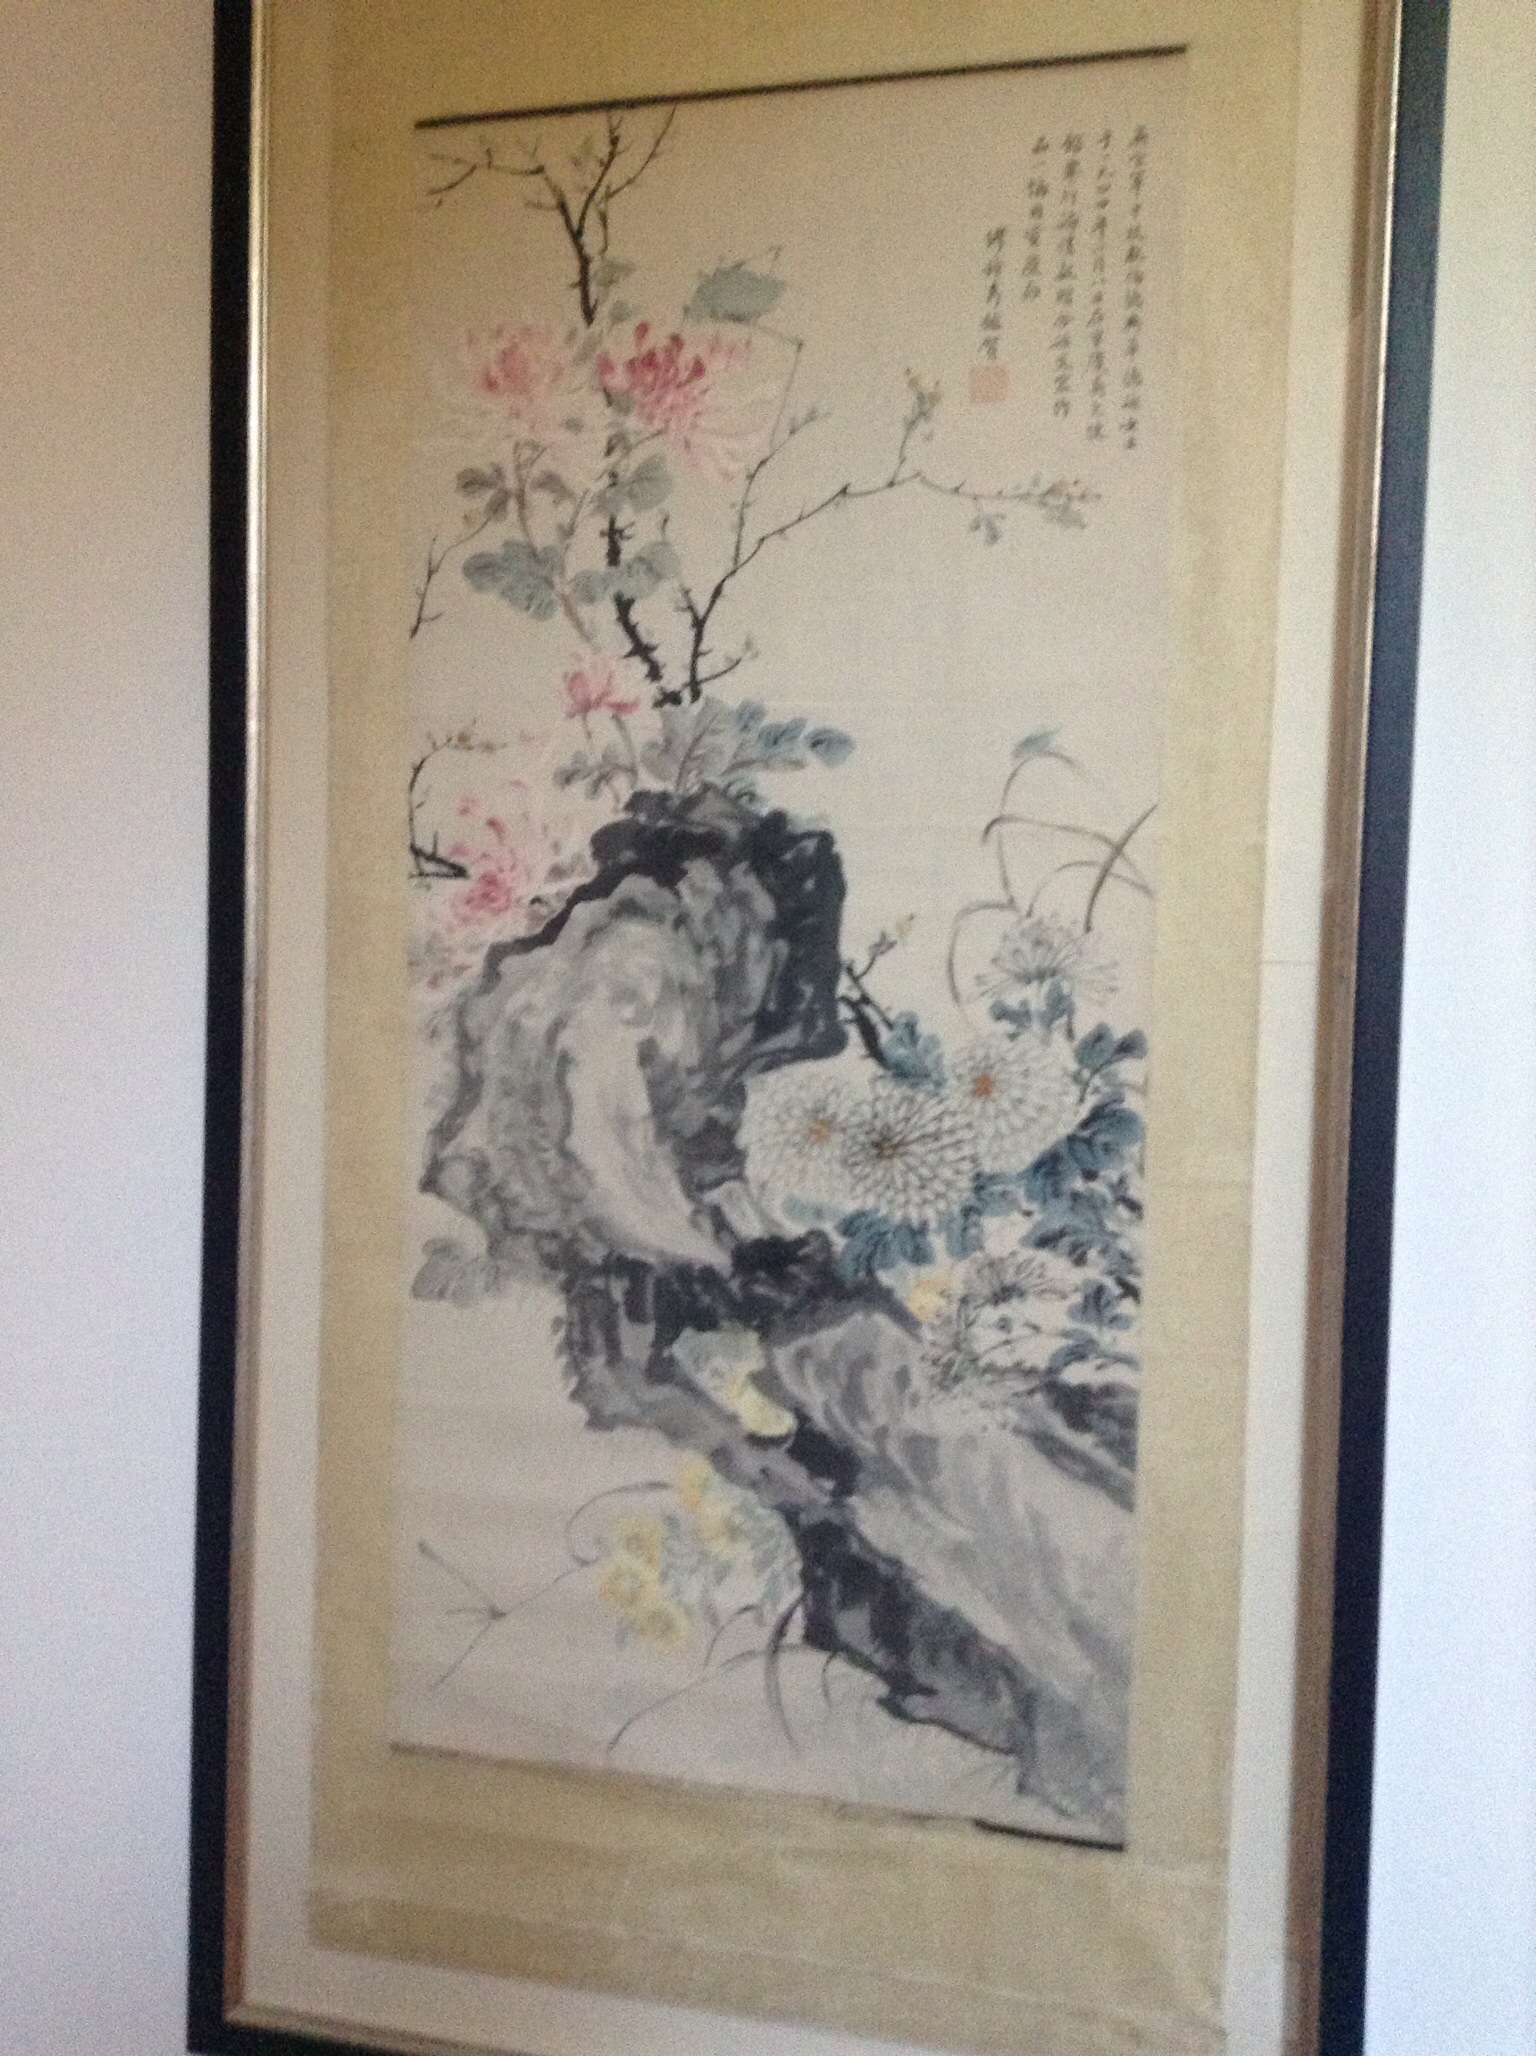 Traditional scroll presented to my parents as a wedding gift by a Chinese friend.